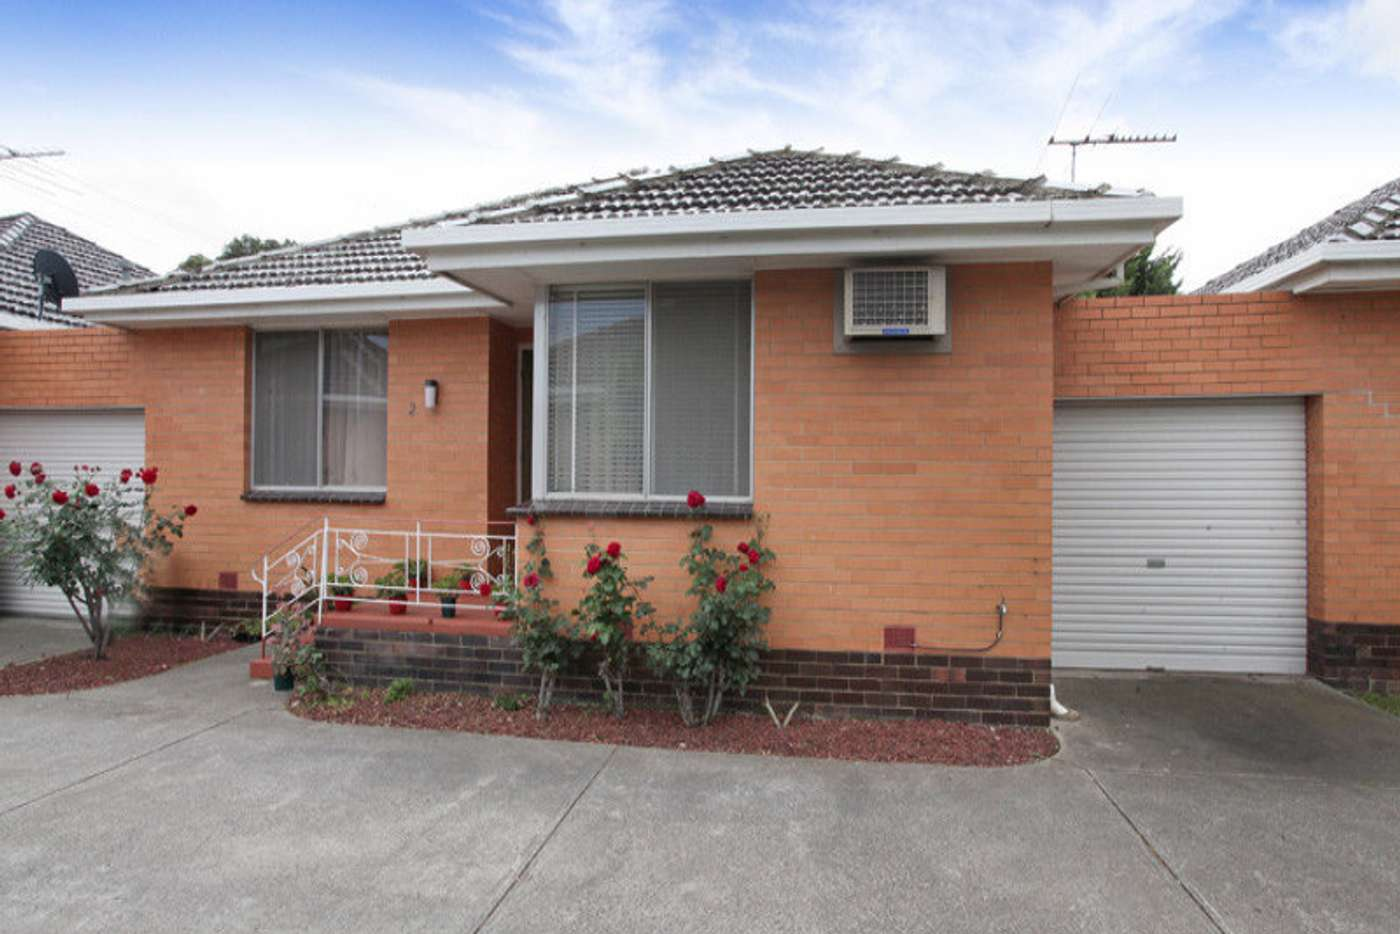 Main view of Homely unit listing, 2/19 Elphinstone Street, West Footscray VIC 3012